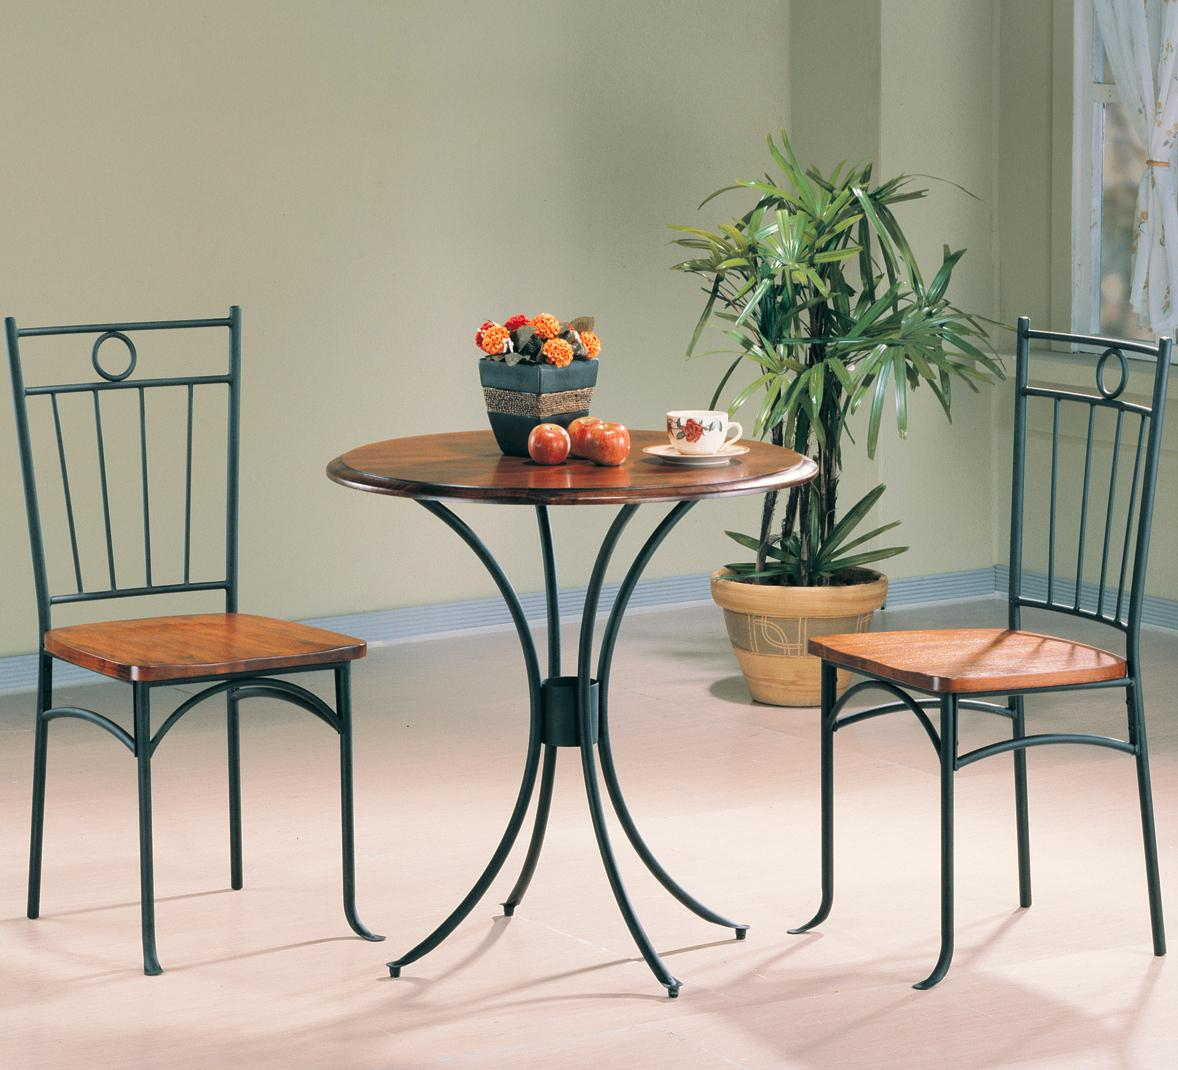 Tamiami 3 Piece Bistro Dining Setcoaster At Value City Furniture Within Most Current 3 Piece Breakfast Dining Sets (View 17 of 20)